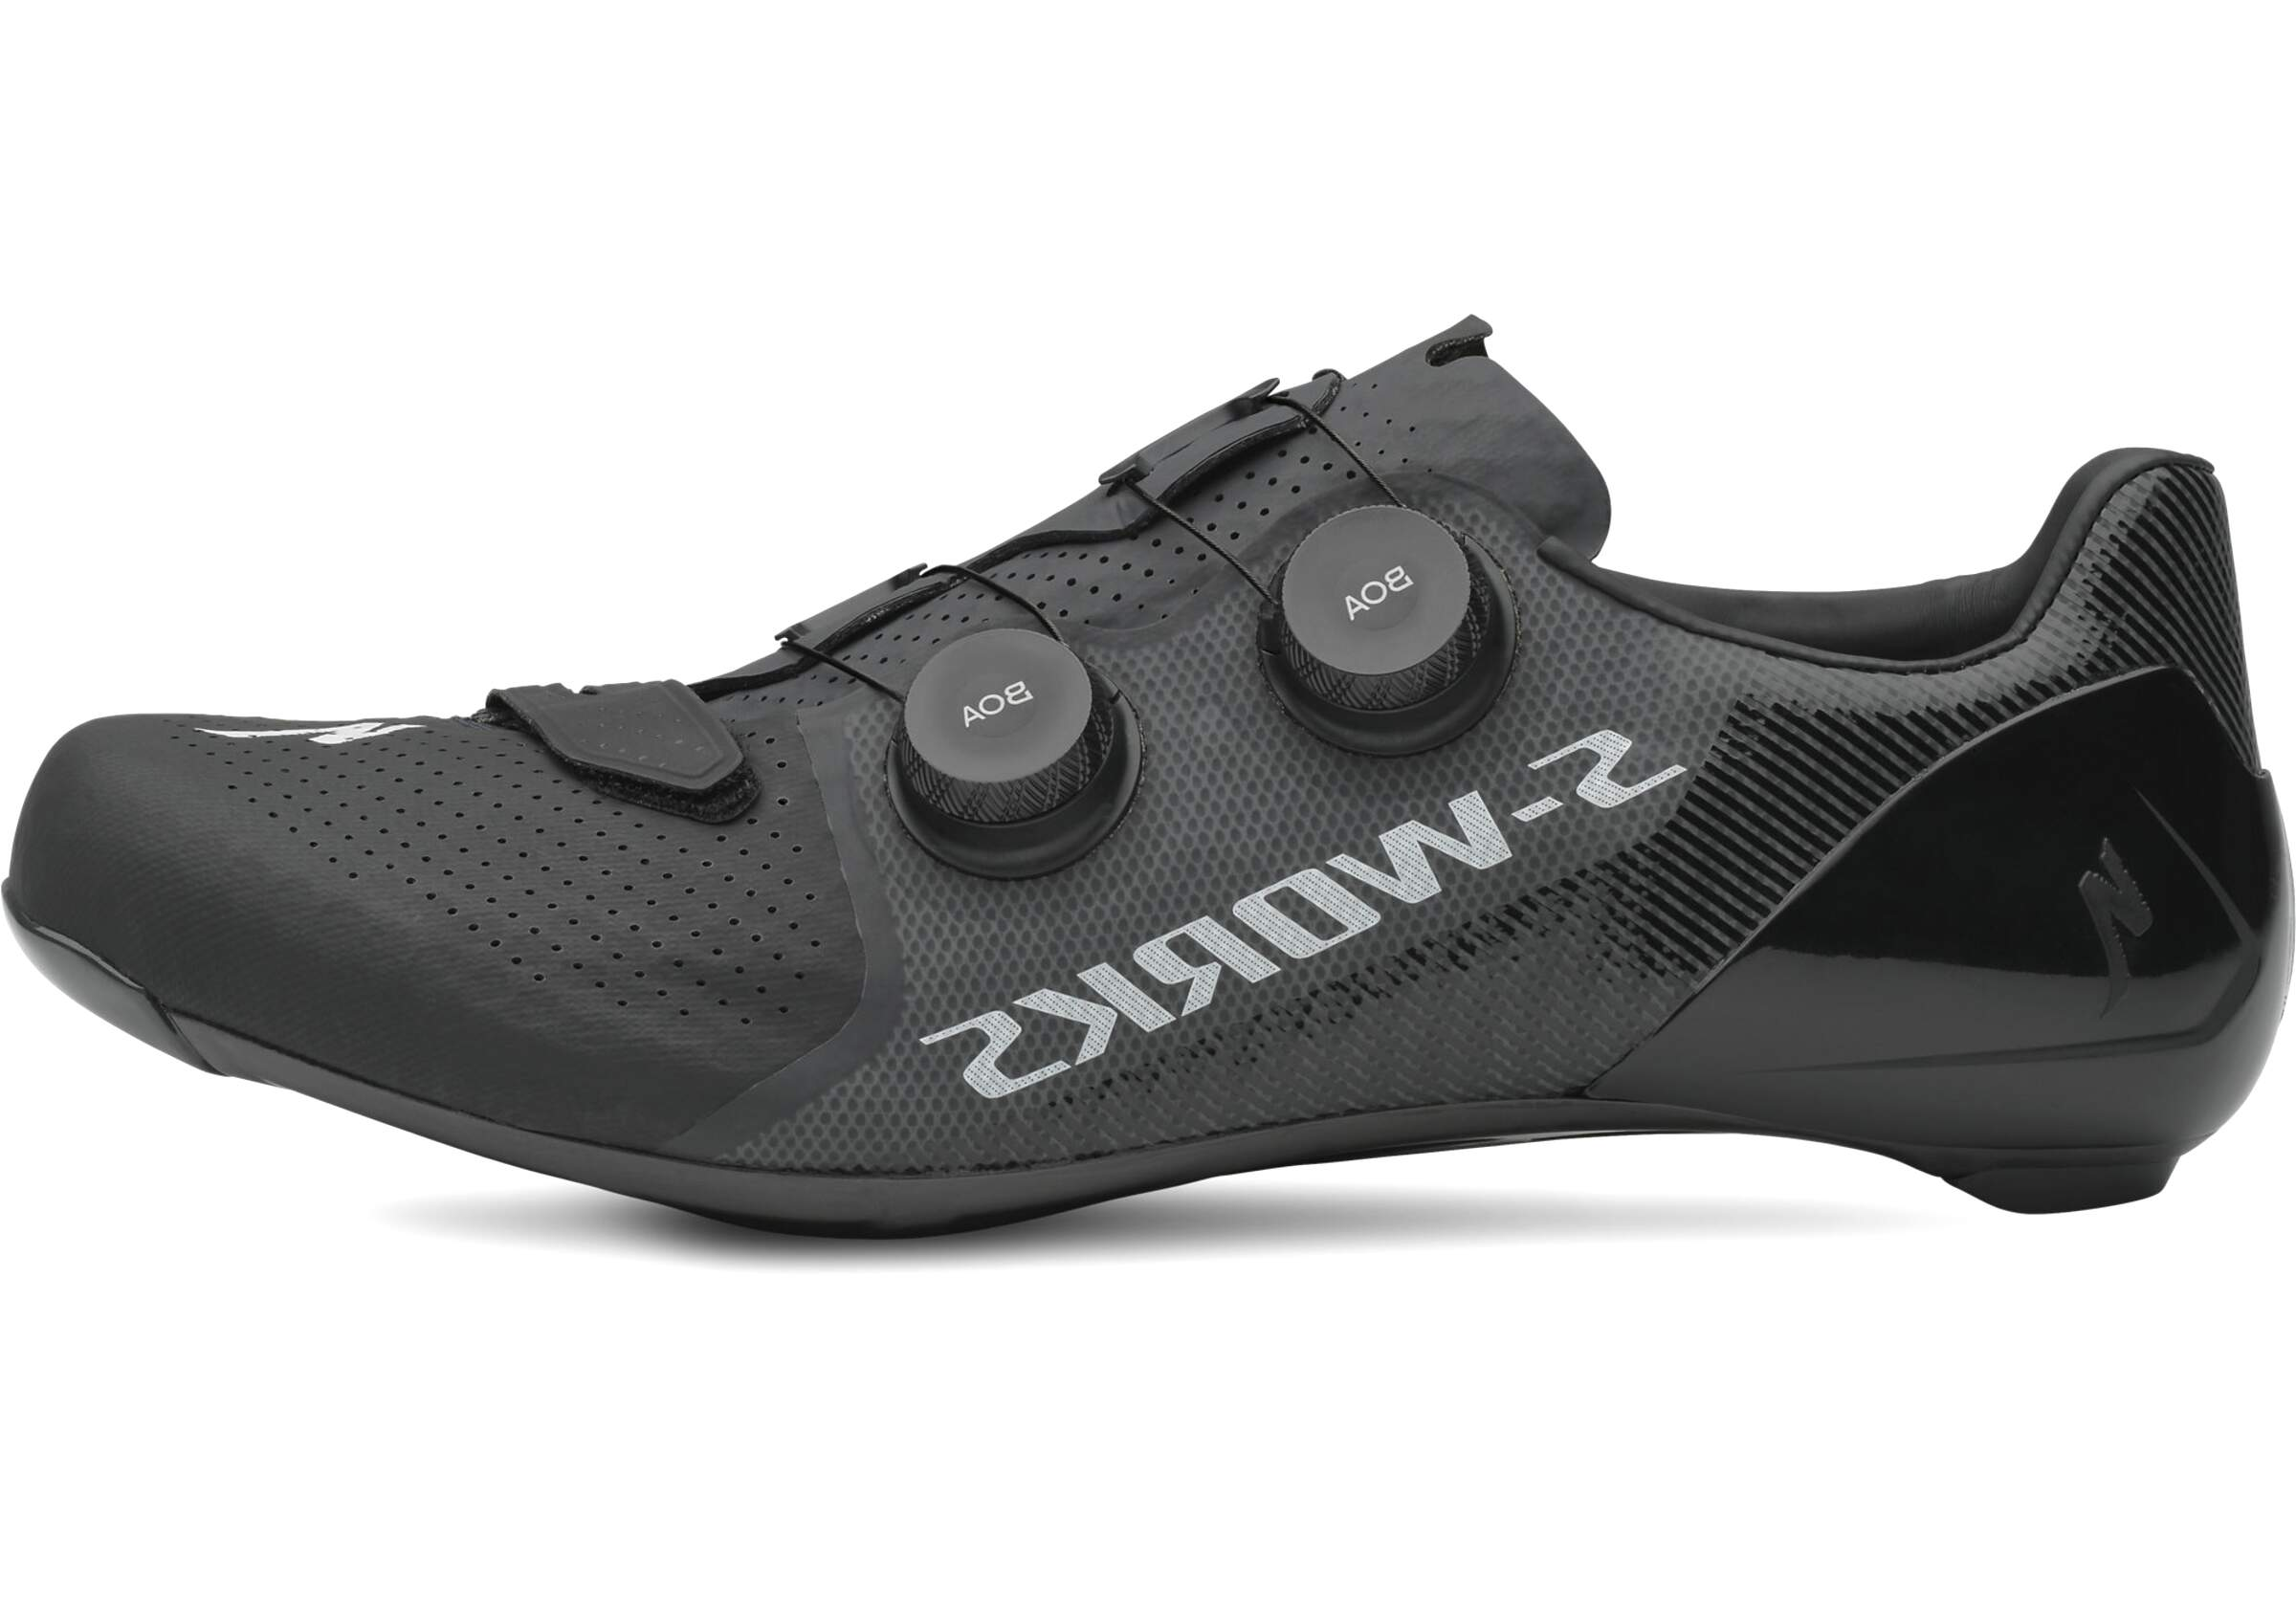 s works shoes for sale